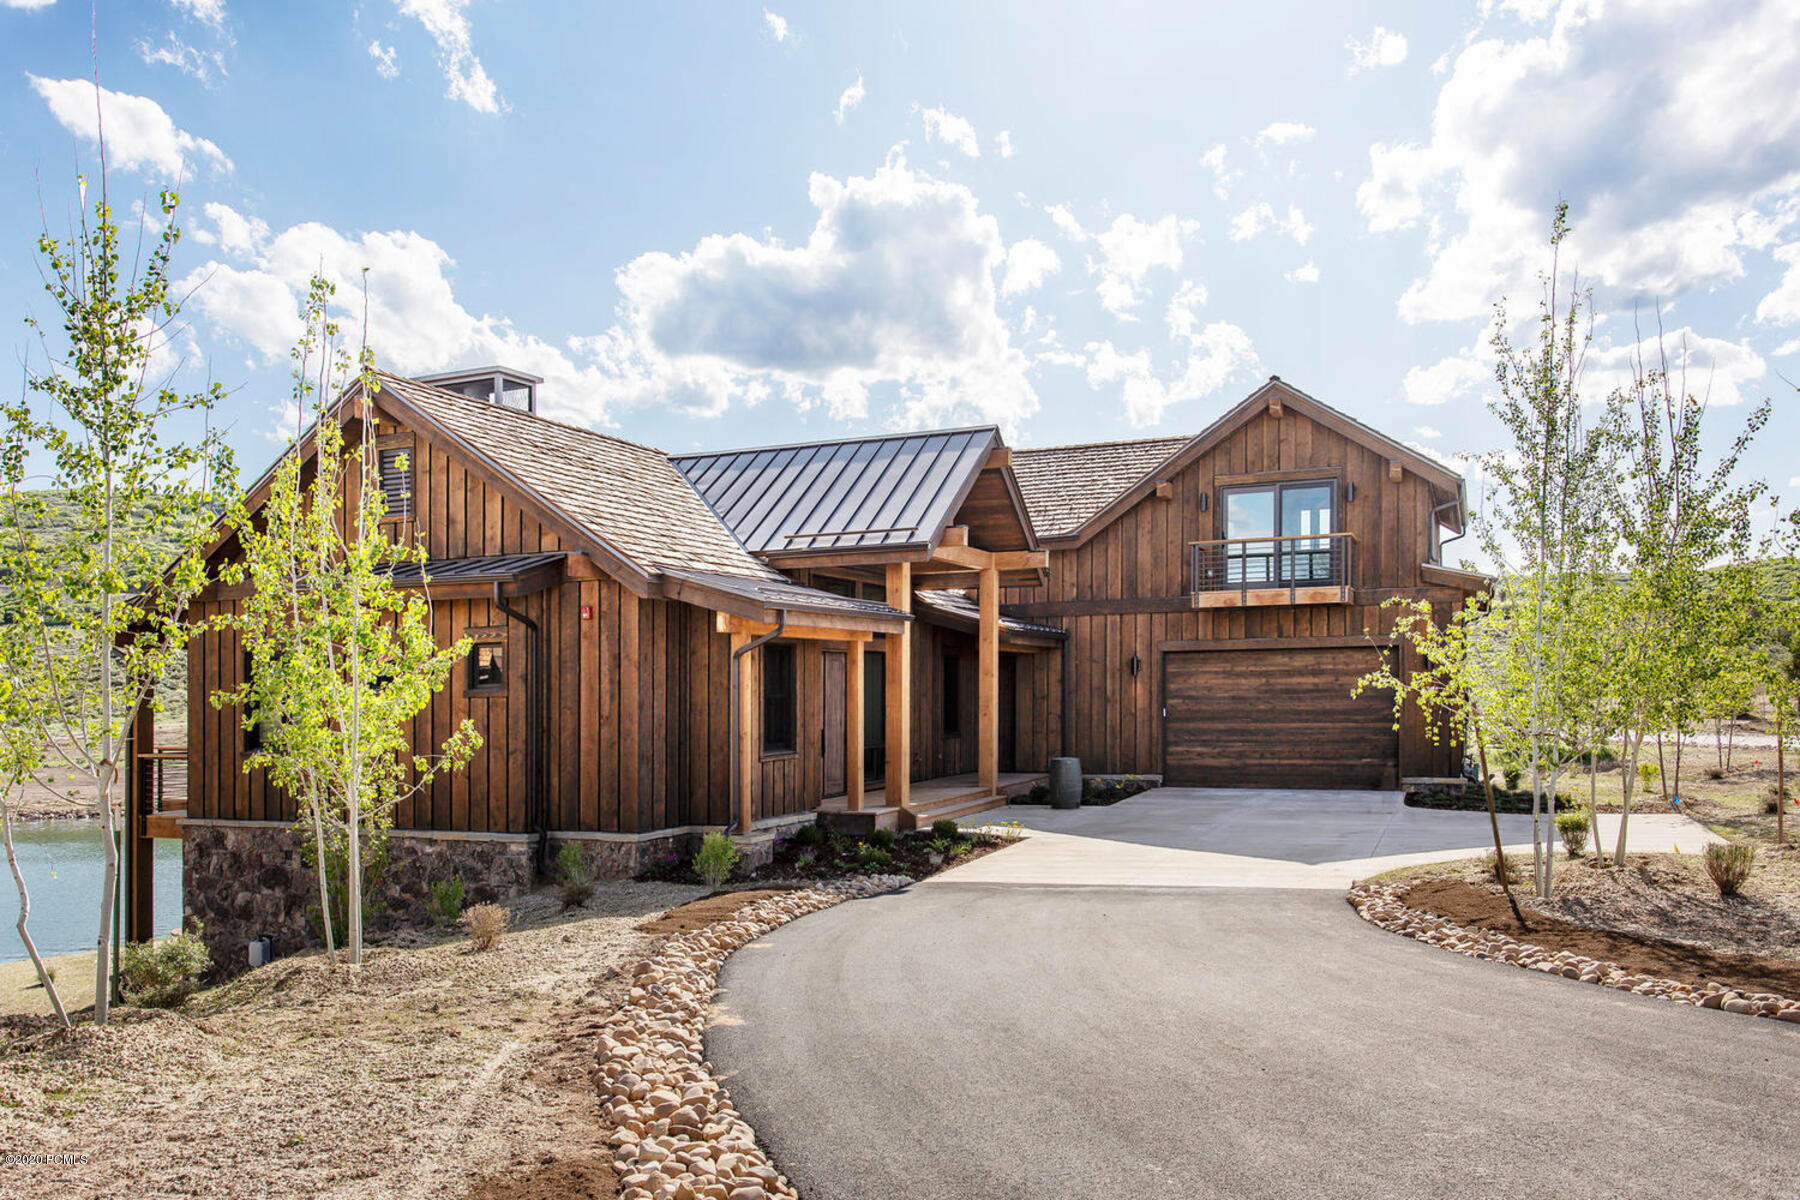 6314 Whispering Way #378, Heber City, Utah 84032, 5 Bedrooms Bedrooms, ,6 BathroomsBathrooms,Single Family,For Sale,Whispering Way #378,12003876